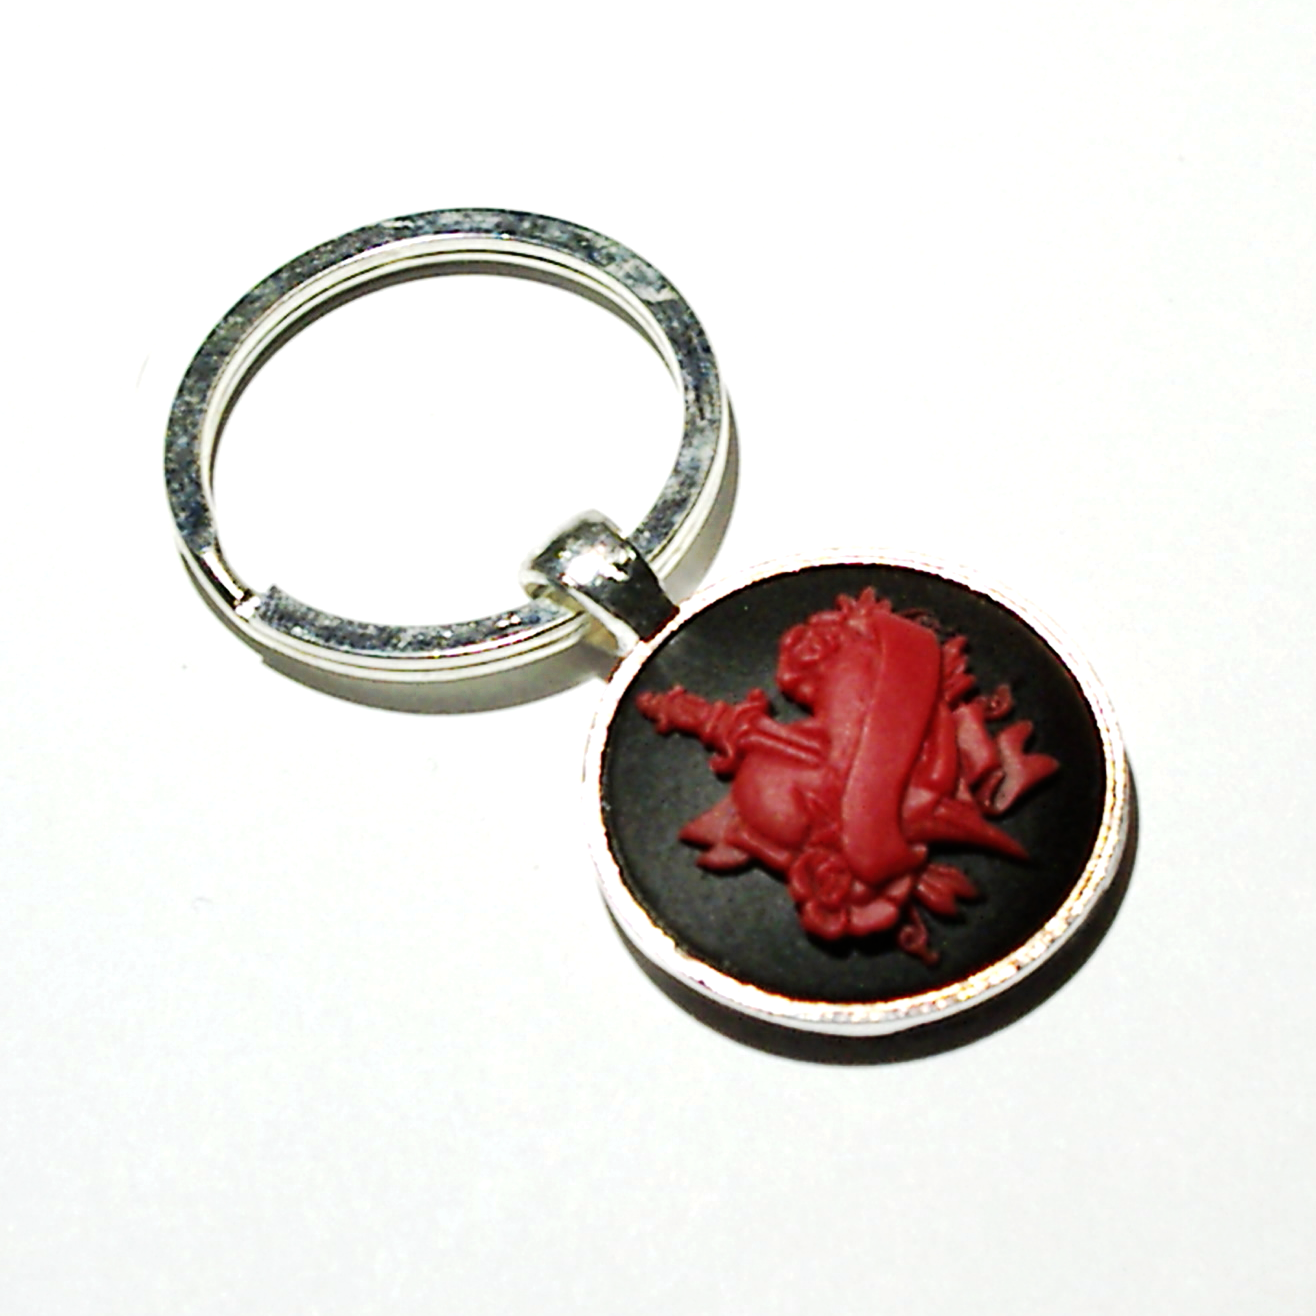 25mm red on black cameo of a heart pierced with a dagger, set in a silver plated bezel frame, with a matching silver split key ring.